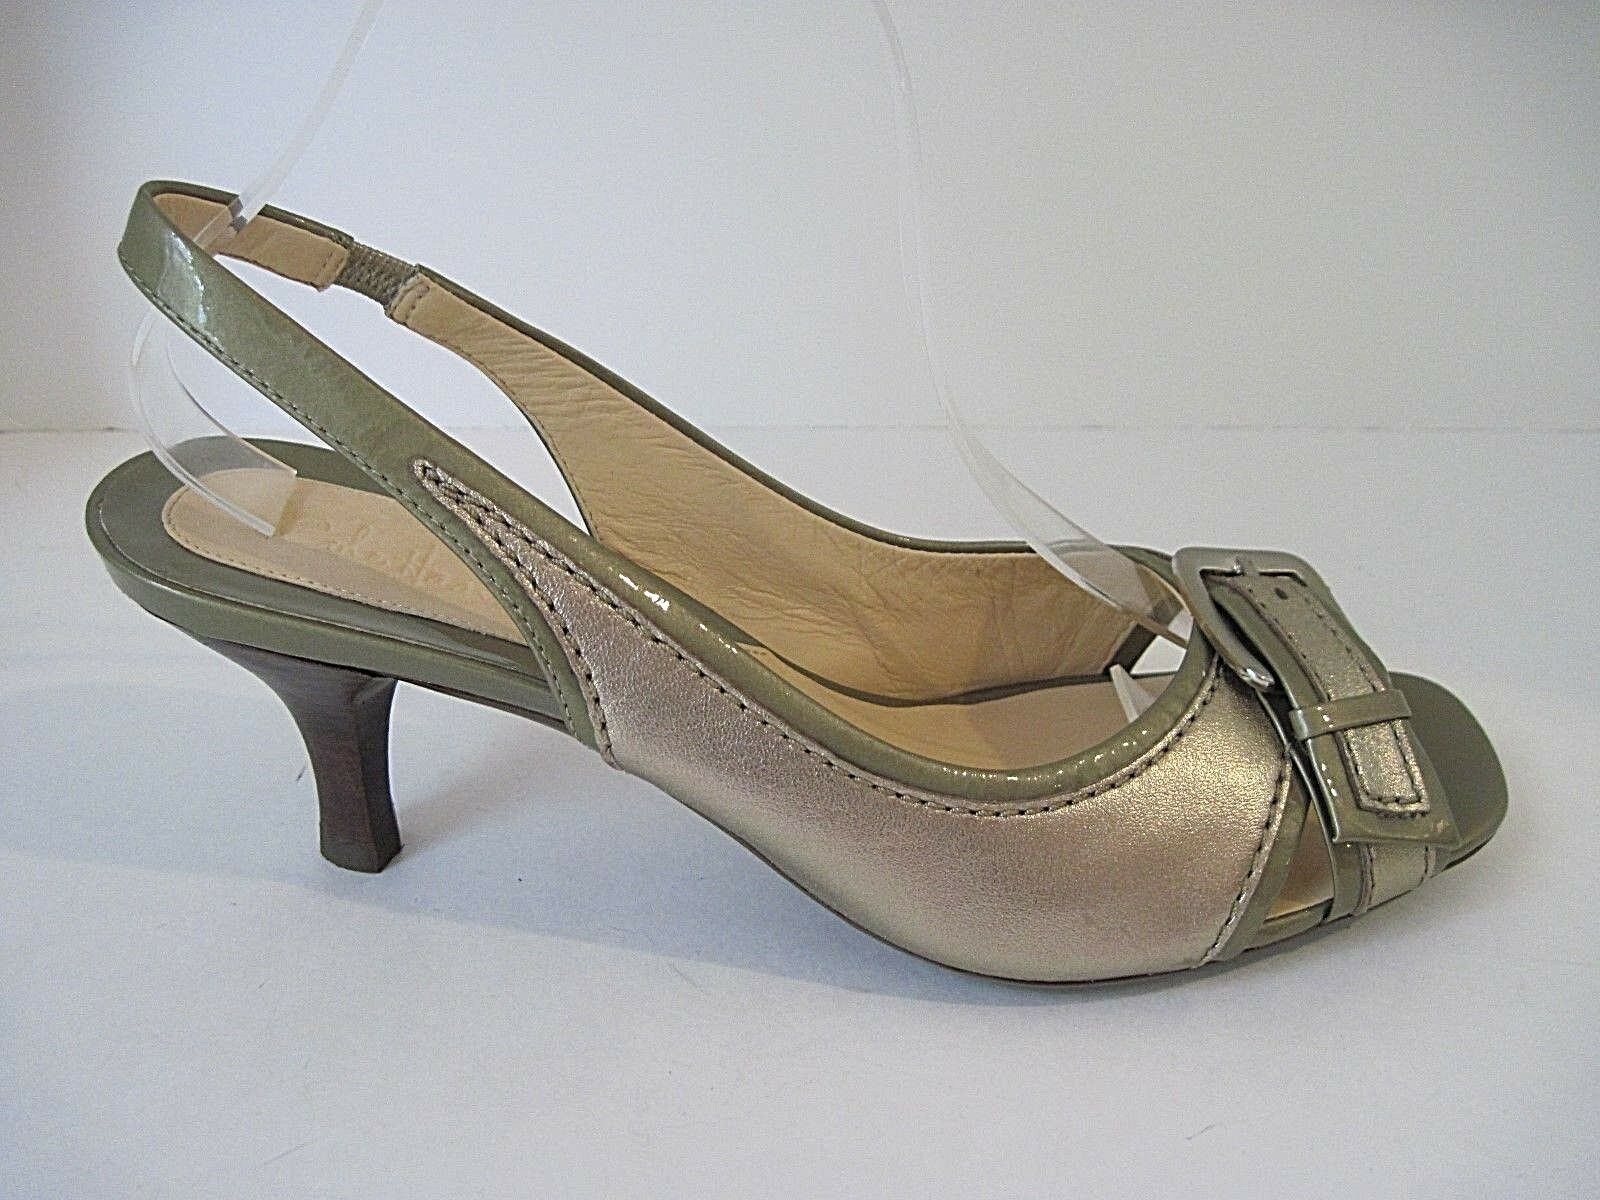 Cole Haan gold Leather  Patent Leather Slingback Open Toe Heels Pumps 9.5B, NEW